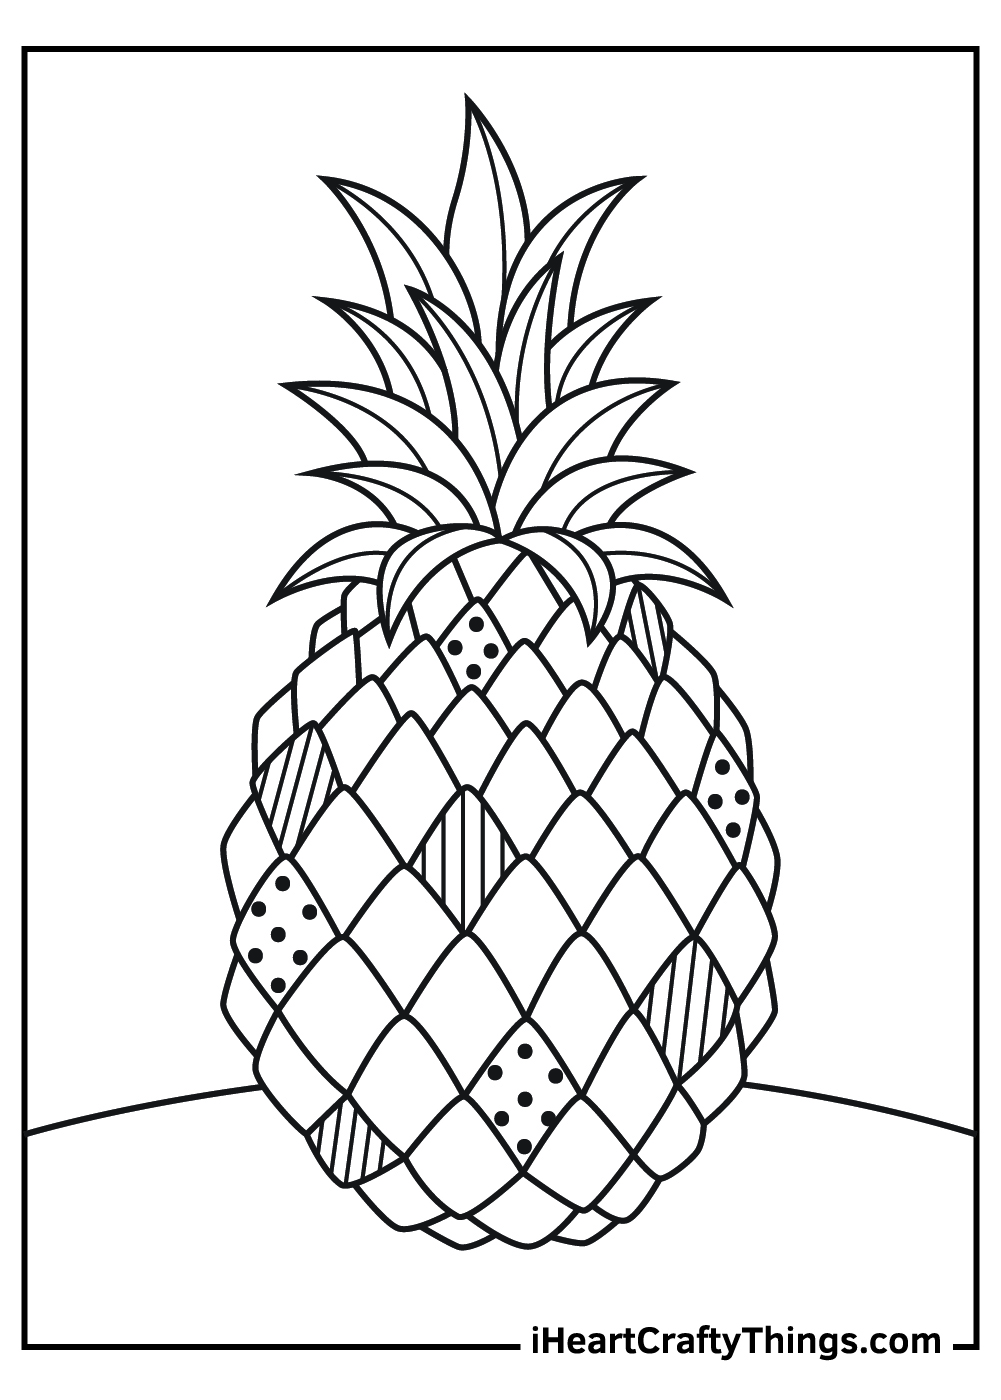 spongebob pineapple coloring pages